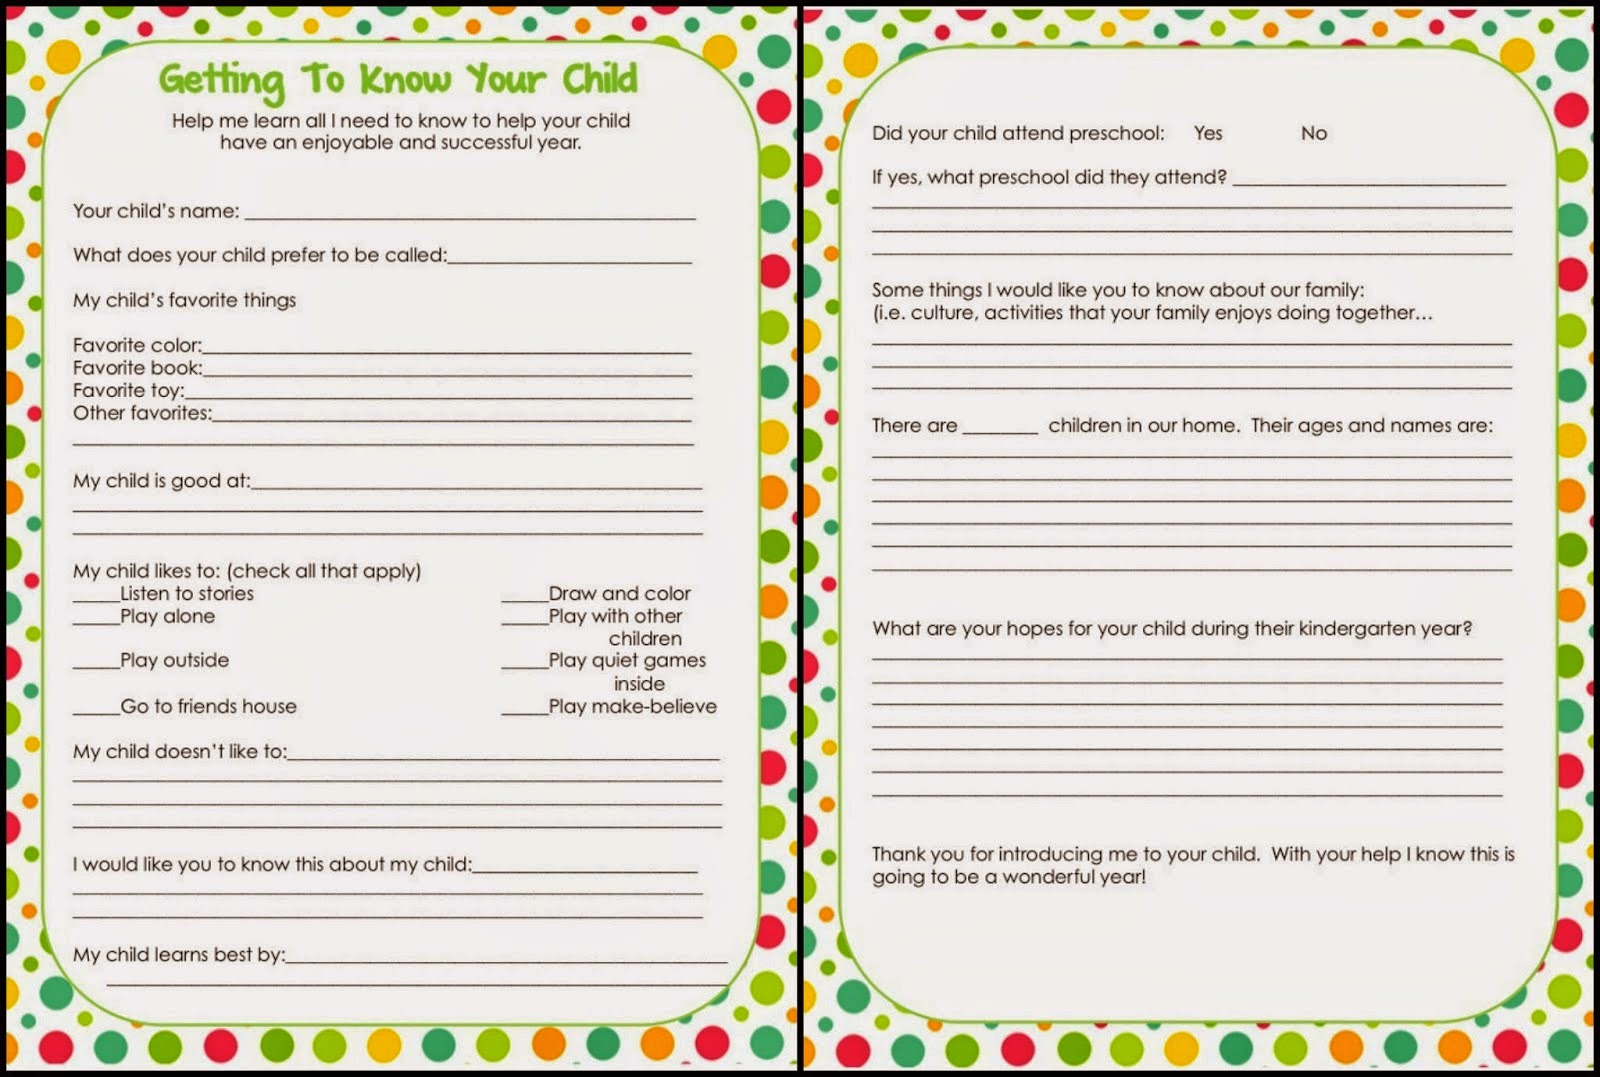 Worksheets Getting To Know Students Worksheet 6 best images of getting to know student printable get you worksheet via kindergarten interest inventory printable